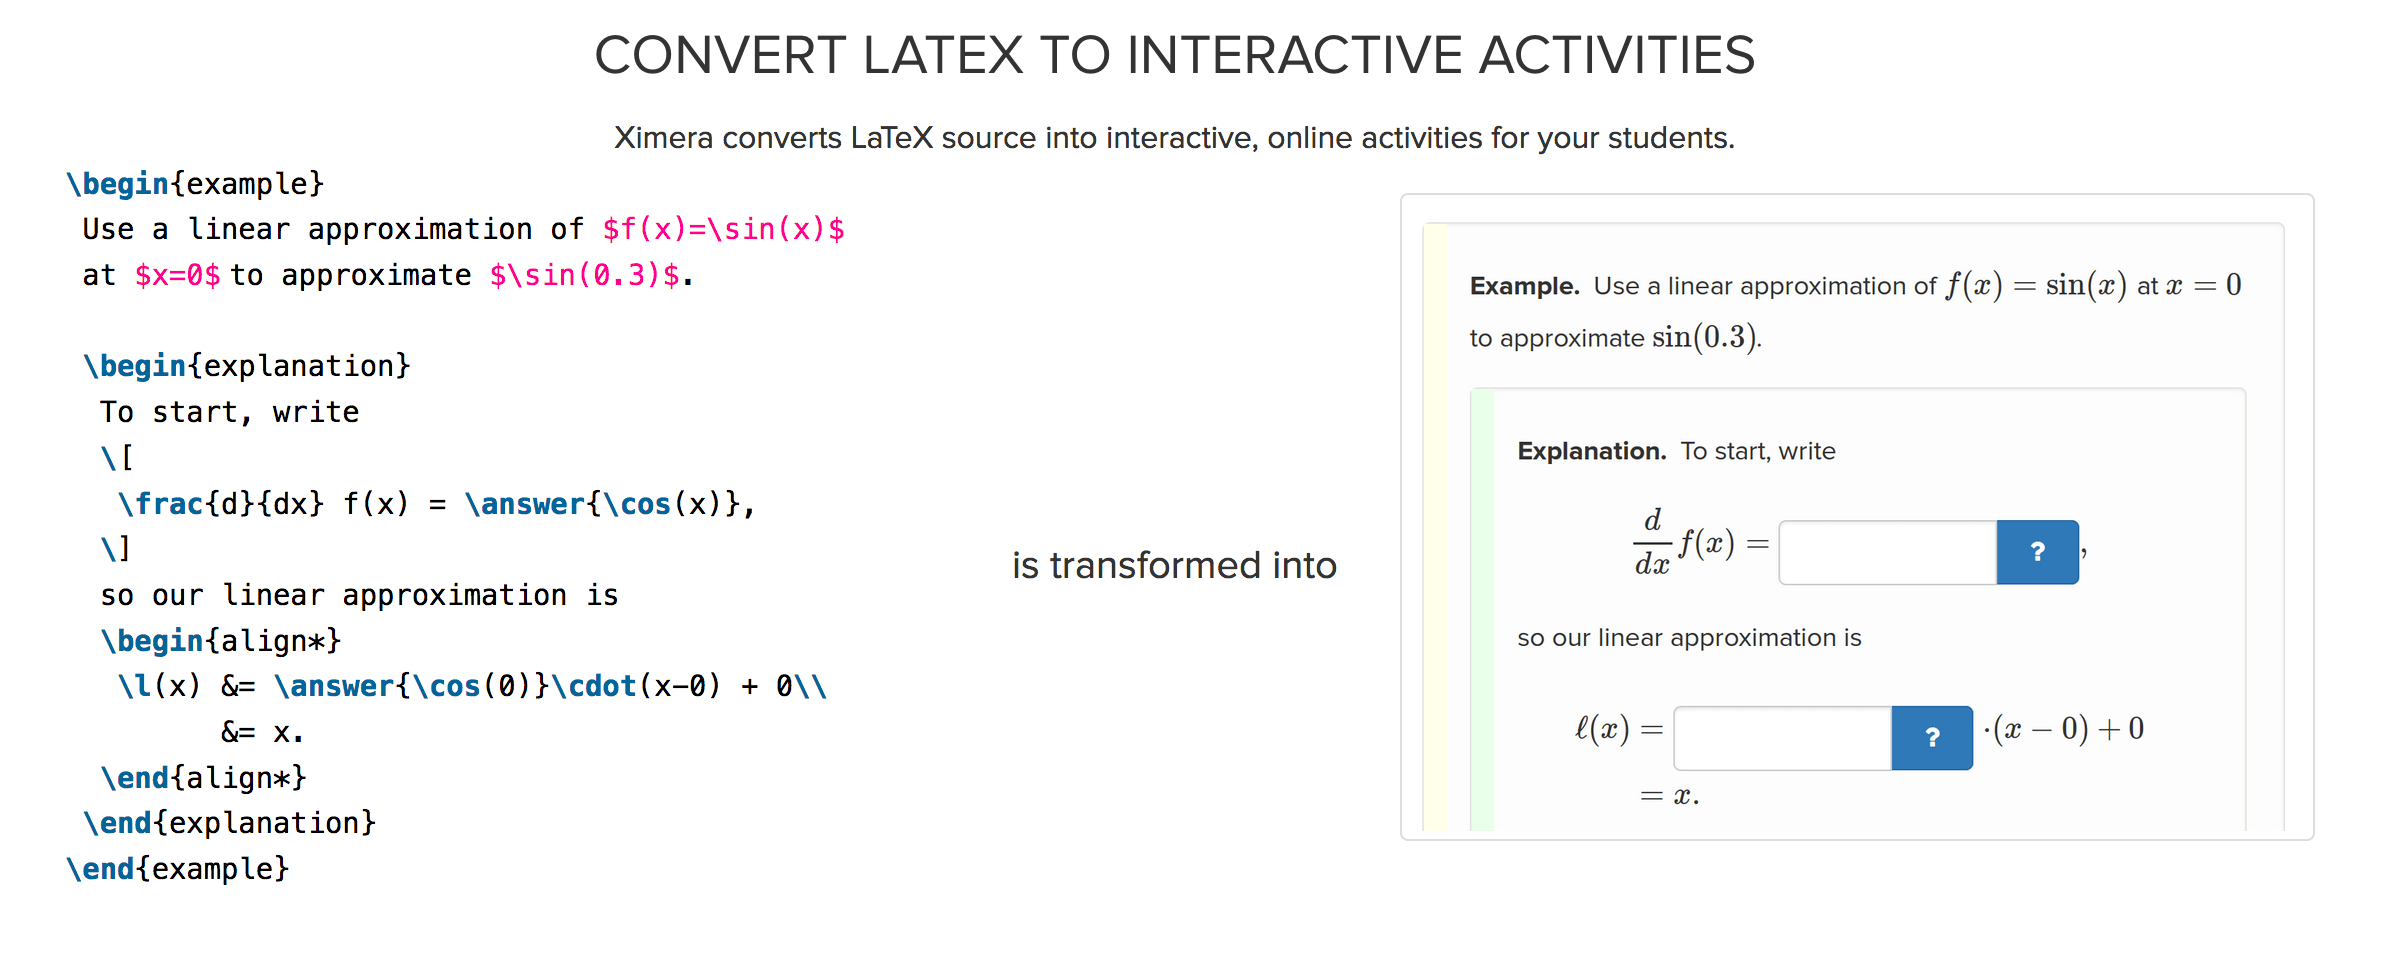 The Ximera Project: Turning LaTeX into Interactive Websites